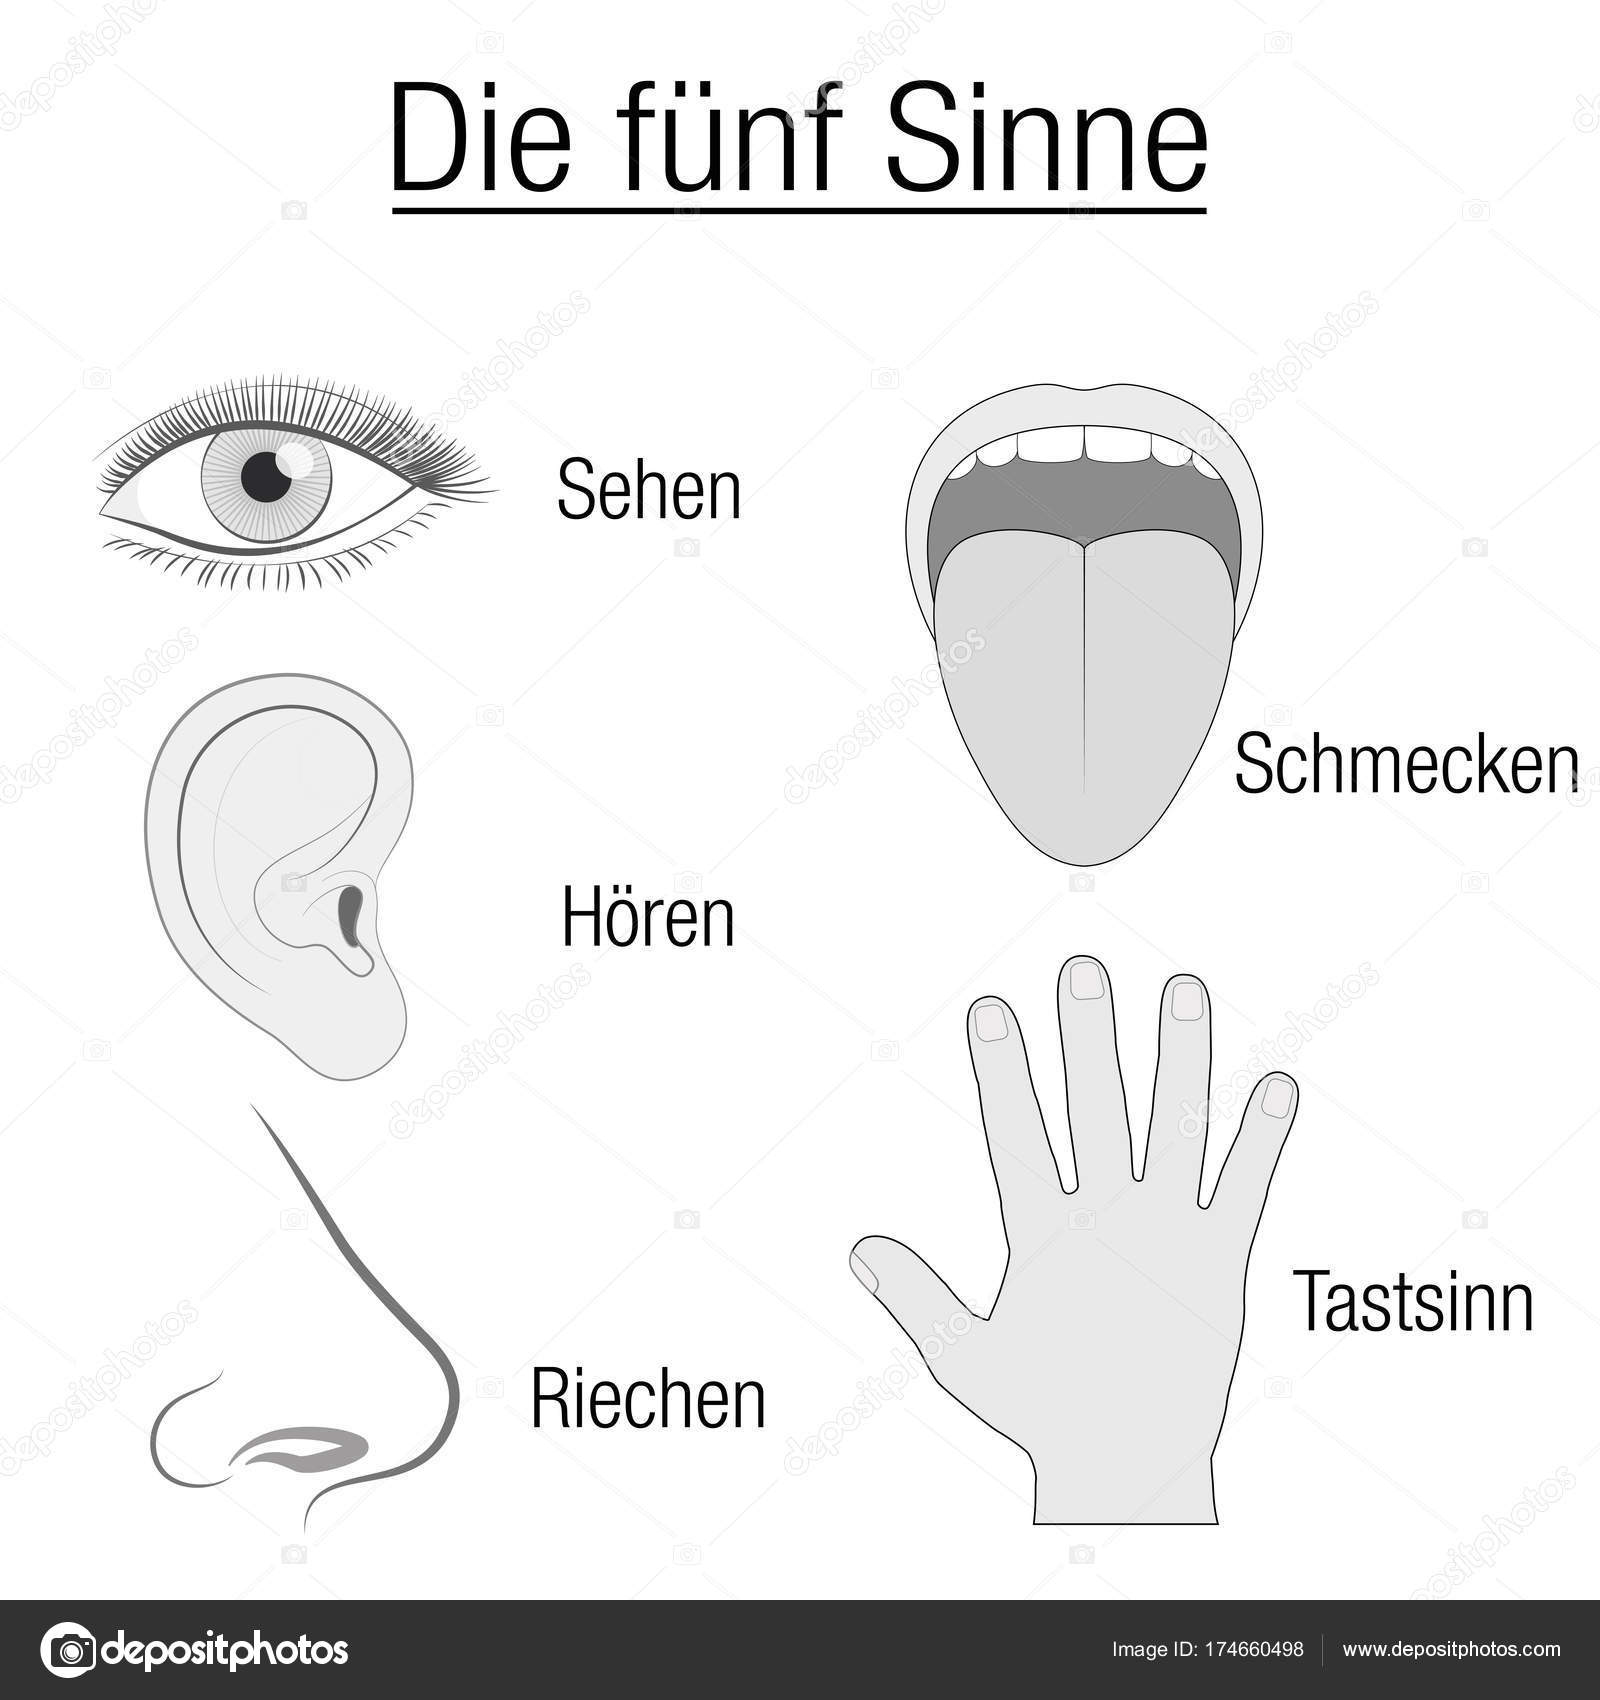 five senses diagram how do you stem and leaf diagrams fünf sinne sinnesorgane deutsche chart  stockvektor